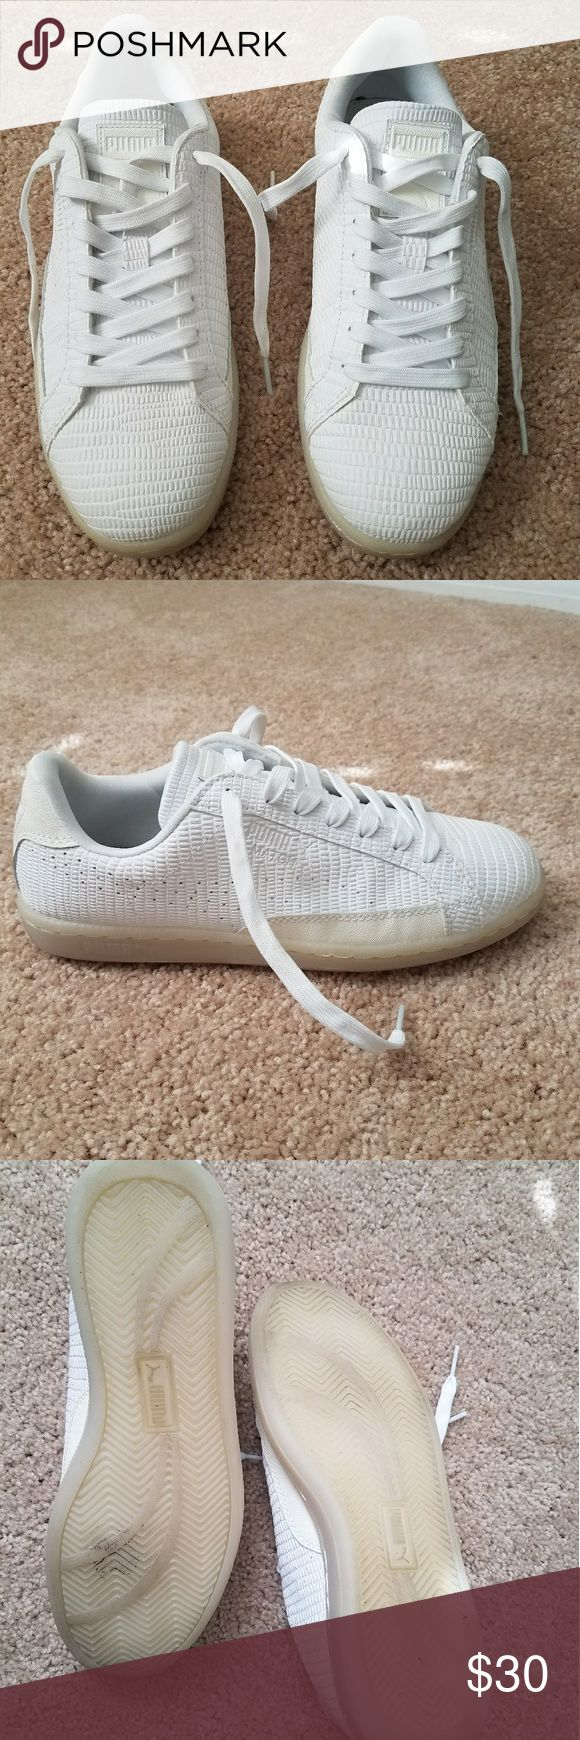 Puma tennis shoes Only worn twice Puma white tennis shoes. Puma Shoes Athletic Shoes